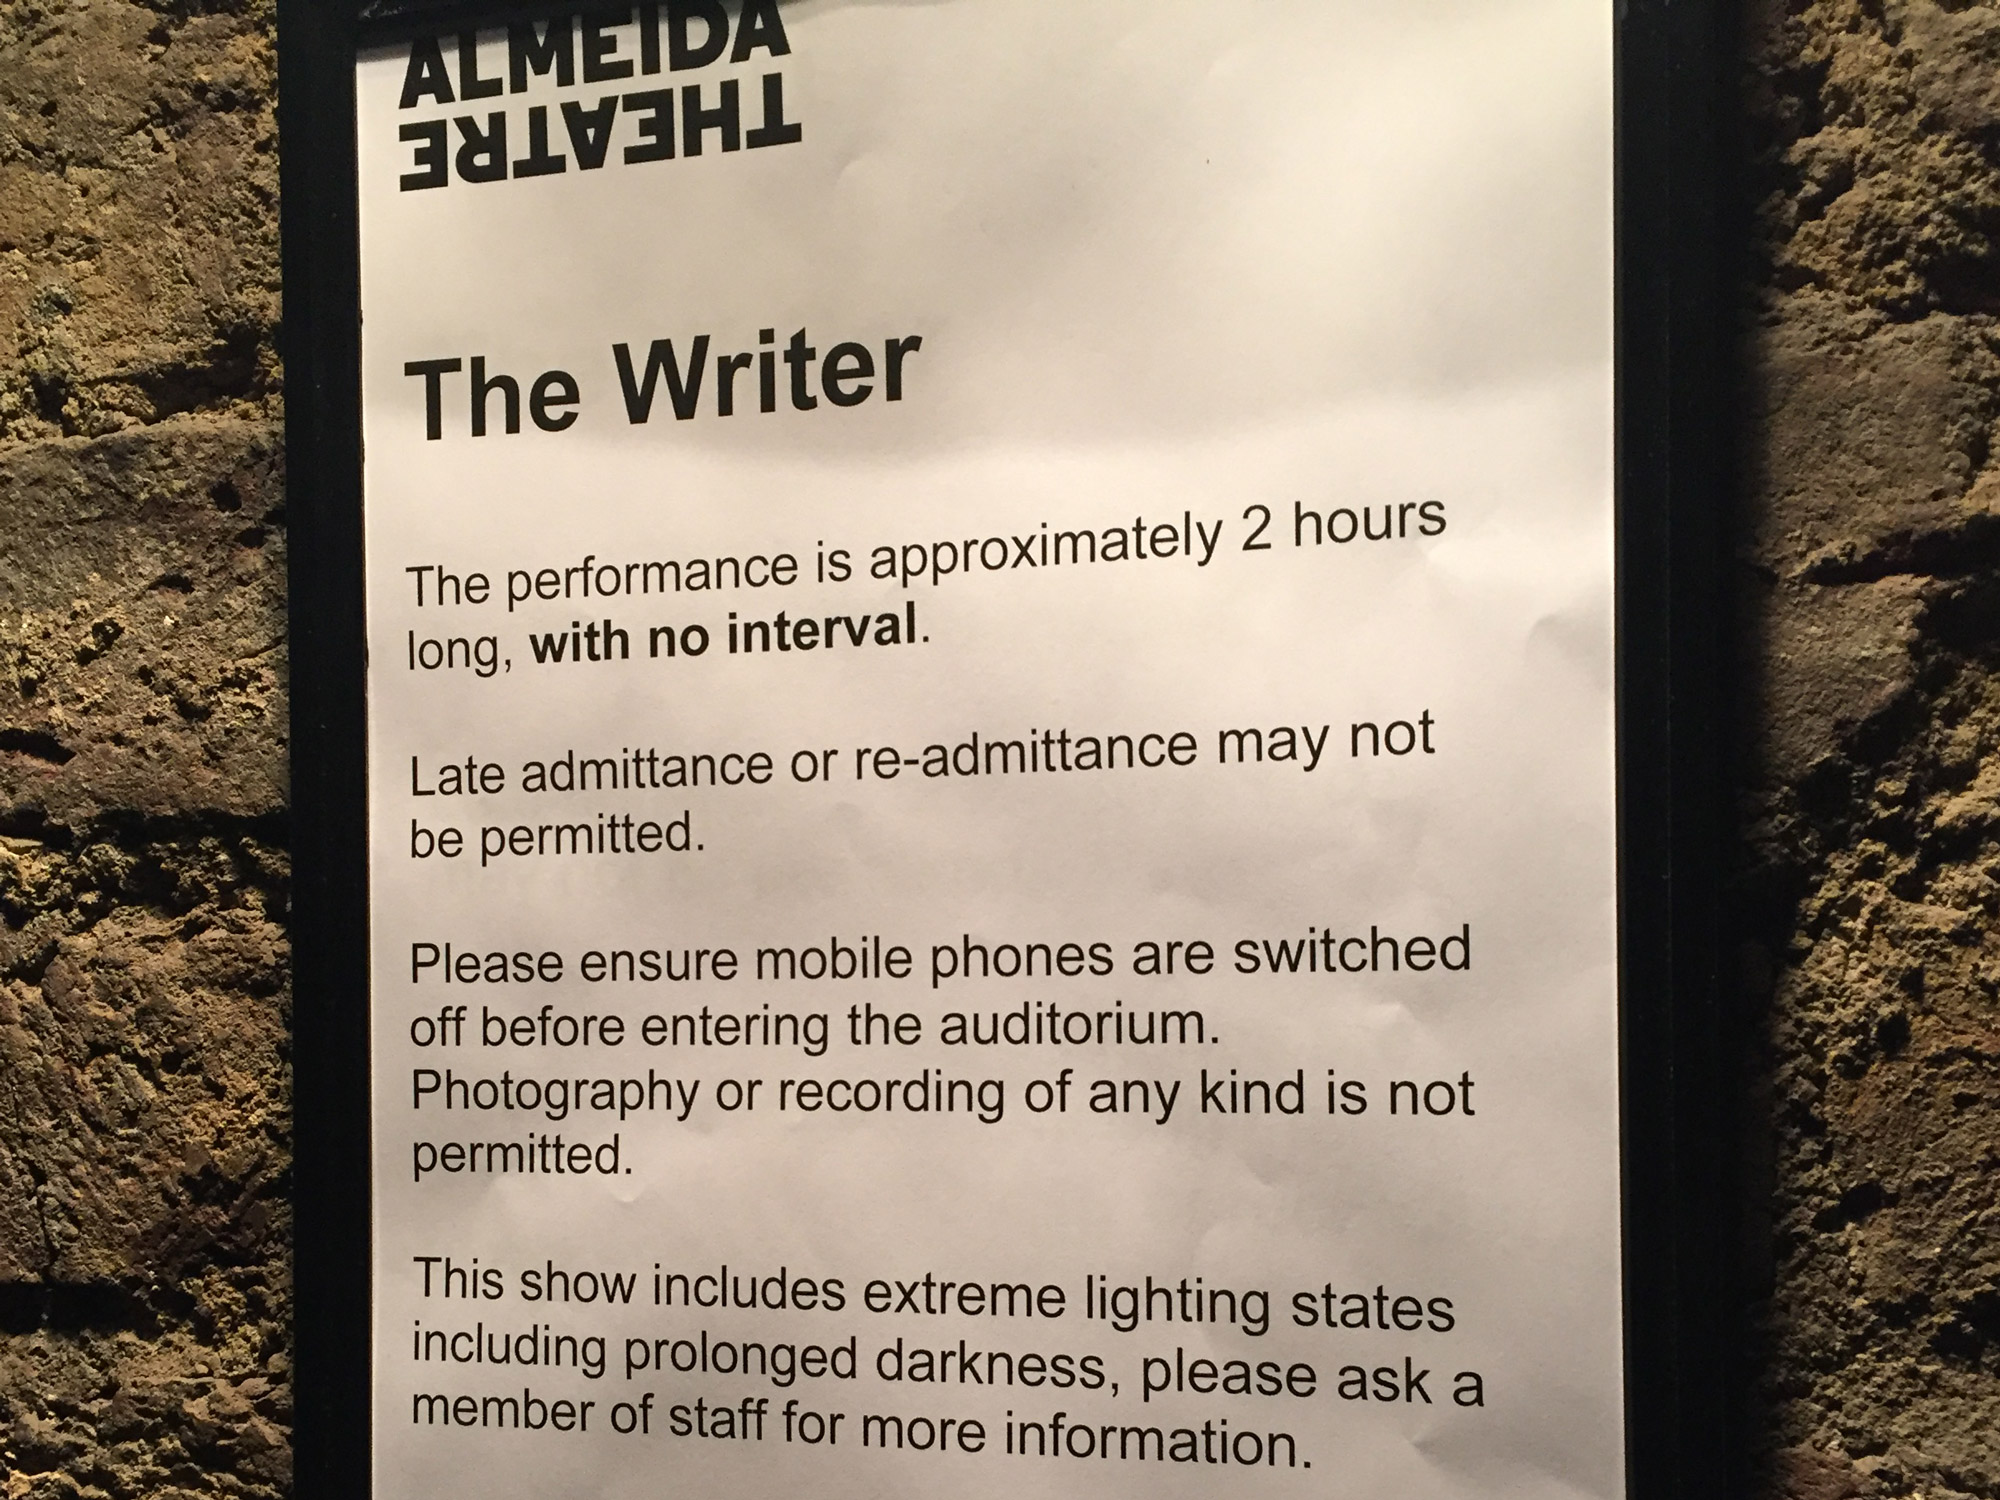 A sign, mounted on a brick wall. The sign read 'The Writer' and has a notifications about the event.